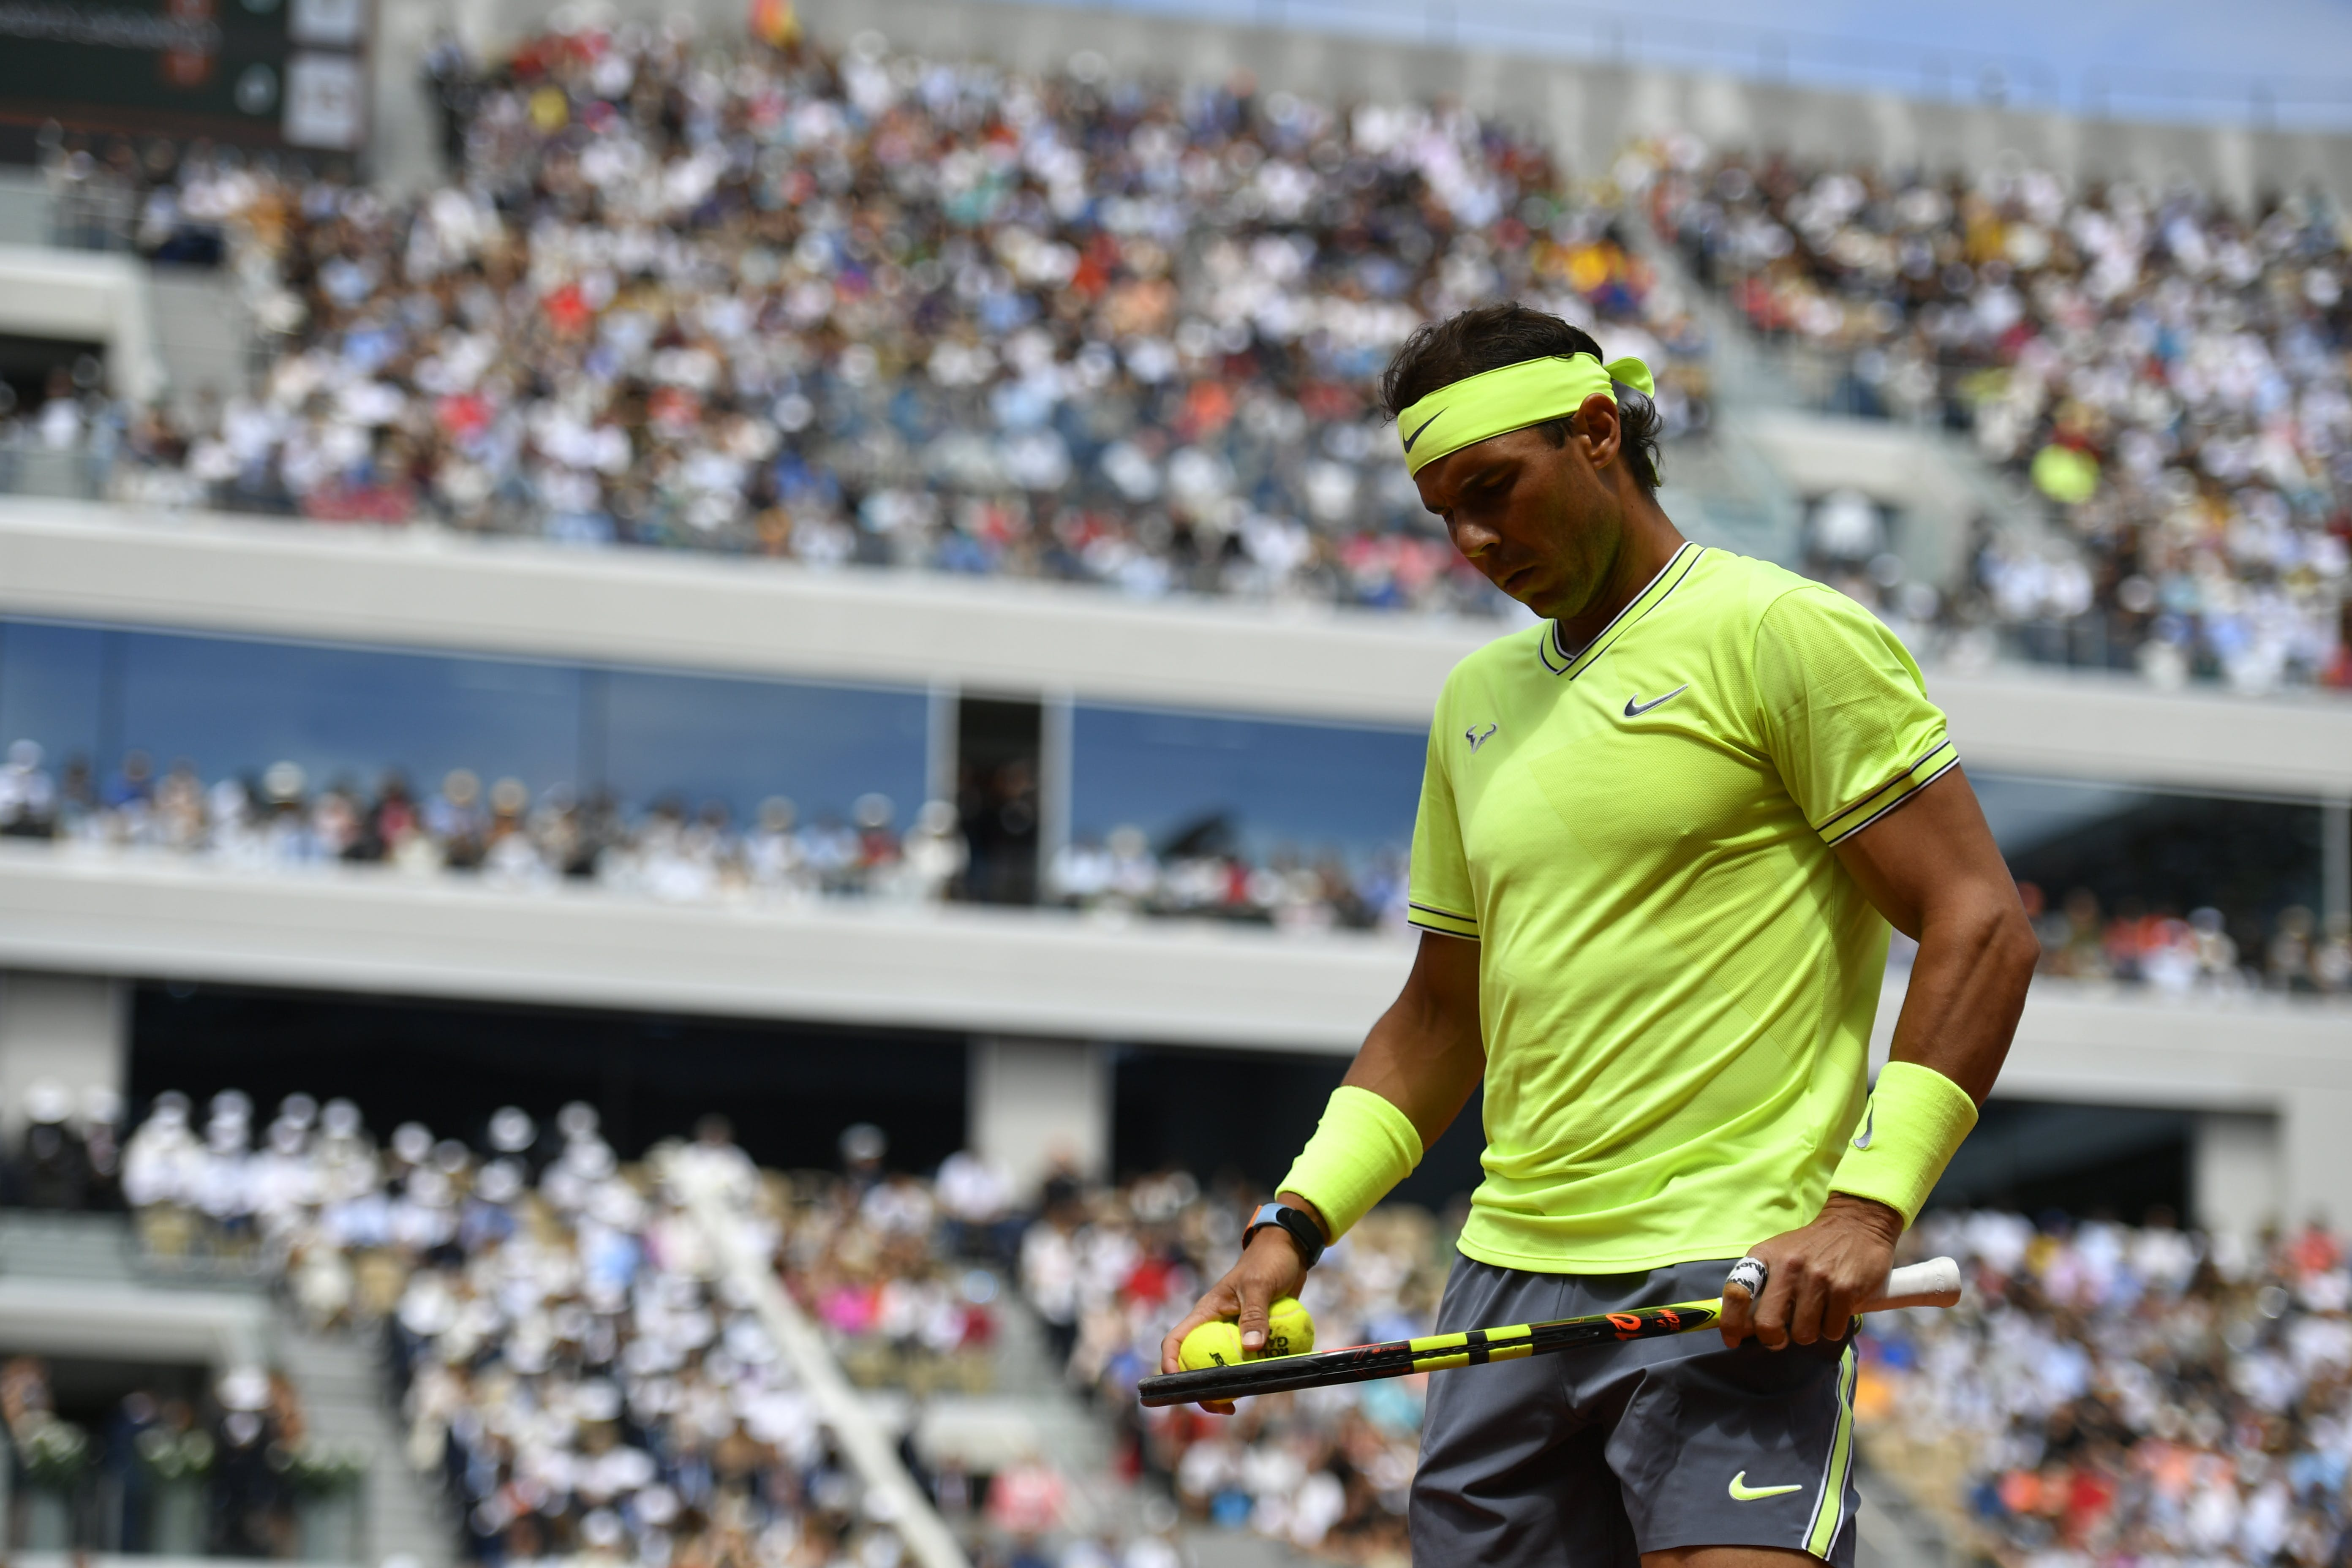 Rafael Nadal during his final against Dominic Thiem (Roland-Garros 2019)